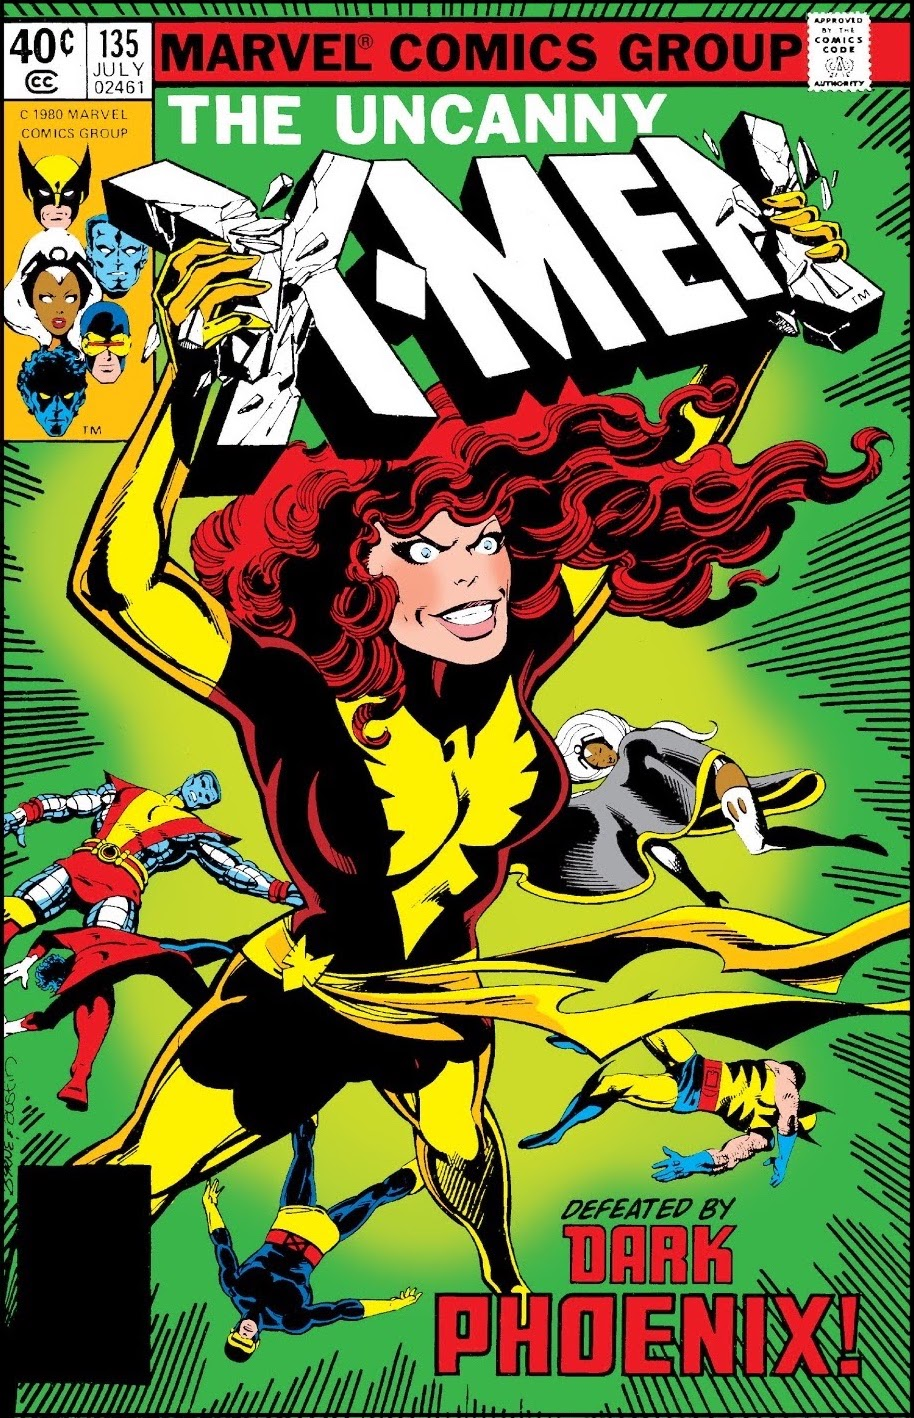 Giant figure of Dark Phoenix crushing the 'X-Men' logo in her hands as teammates lie defeated